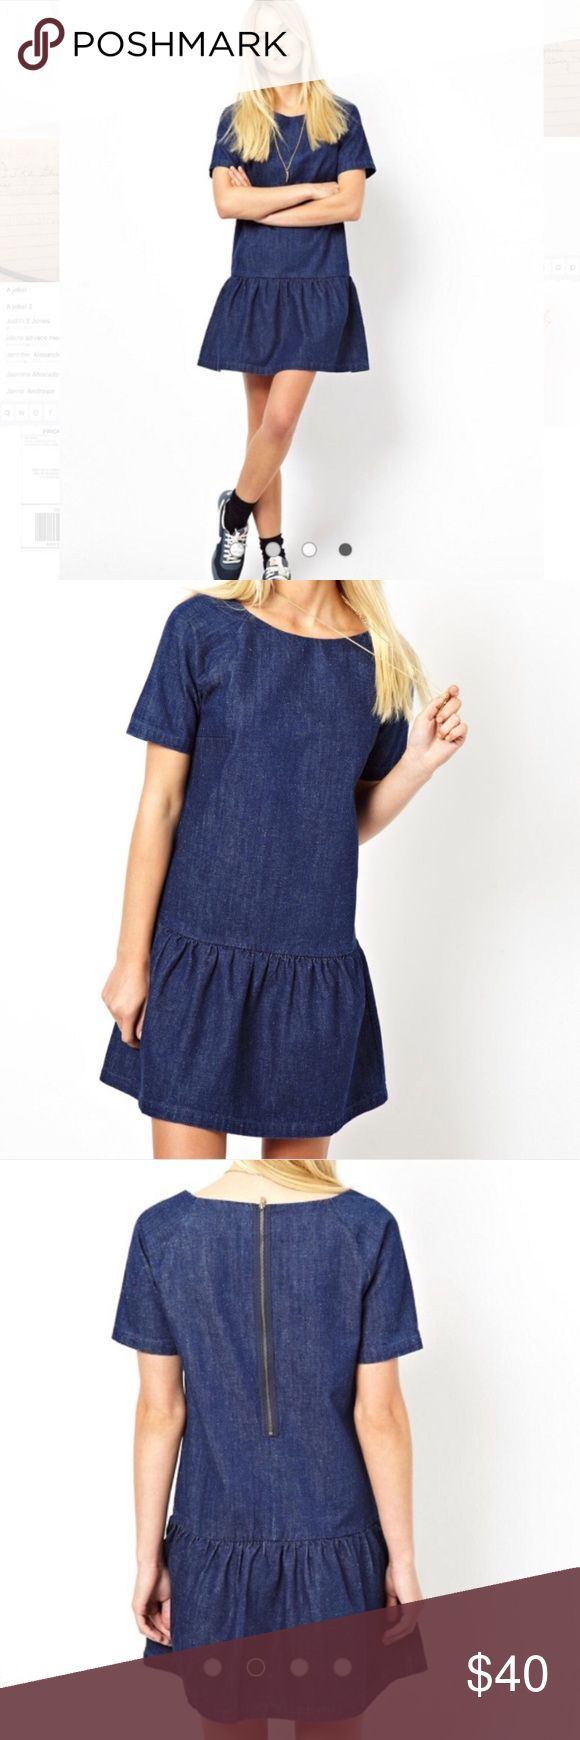 "💙ASOS💙PREMIUM DENIM DRESS W/DROP WAIST💙 Rock this super cute drop waist dress from ASOS Denim! Short sleeves back exposed zipper. Nice speckling of white throughout. Woven cotton Crew neck•Ruffle hem•Regular fit - true to size Machine wash•100% CottonOur model wears a UK 8/EU 36/US 4 and is 178cm/5'10"" tall Score a wardrobe ASOS our London-based design team scour the globe to nail your new-season fashion goals with need-right-now dresses!!! Measurements taken flat bust 17"", waist A little…"